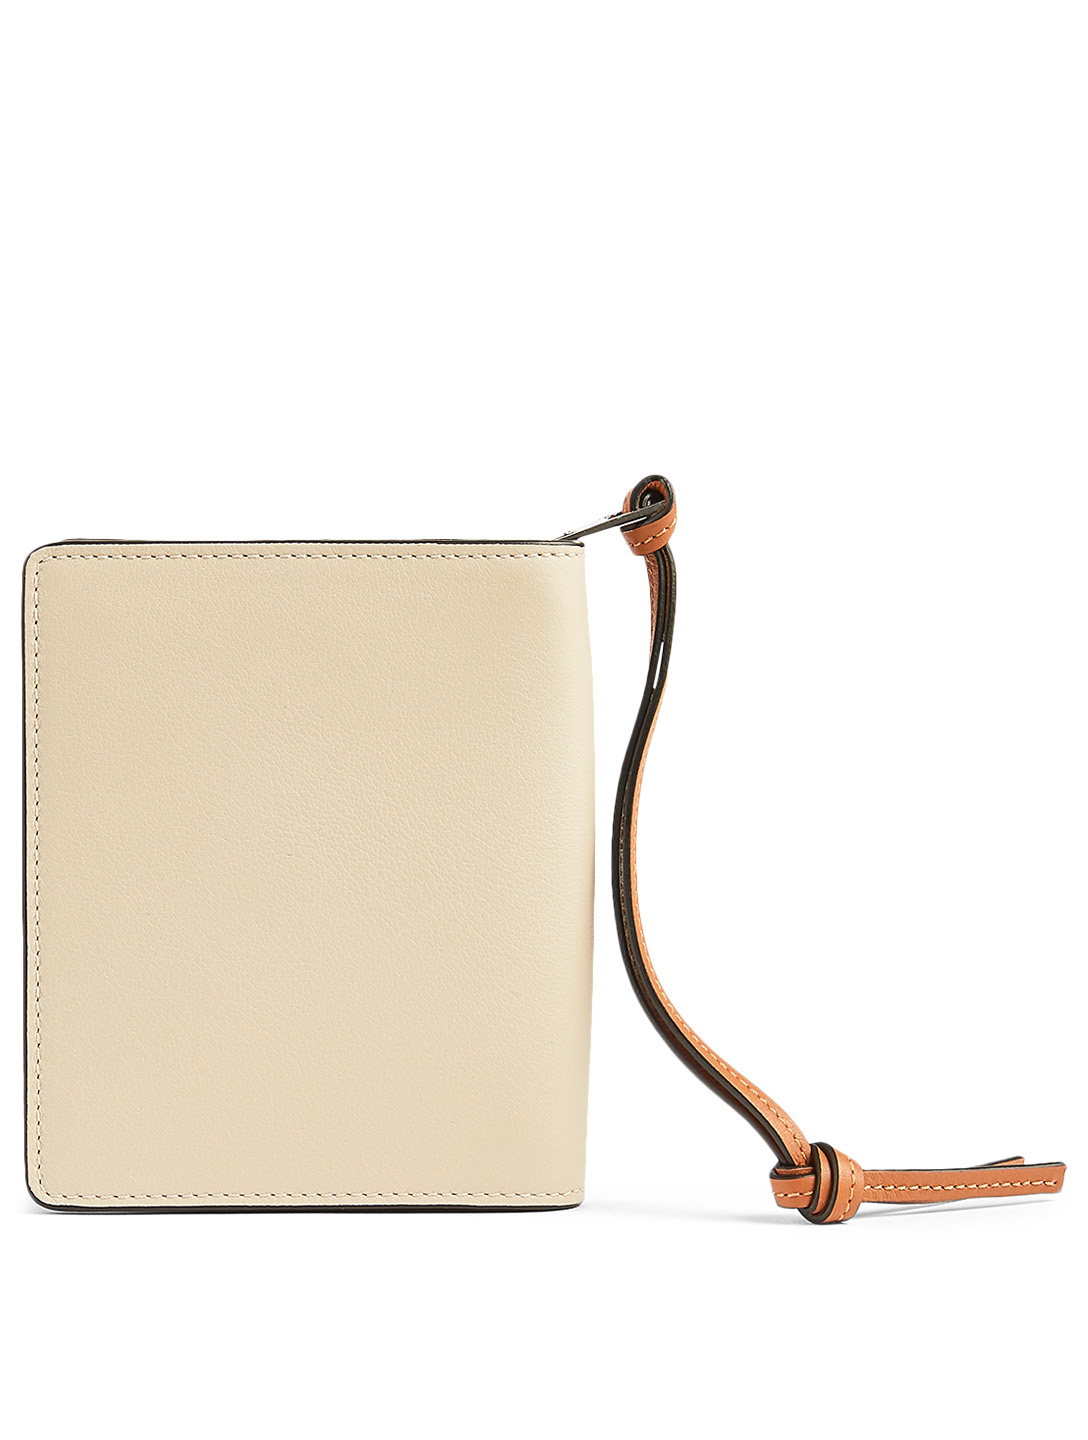 LOEWE Brand Leather Compact Zip Wallet Women's Beige